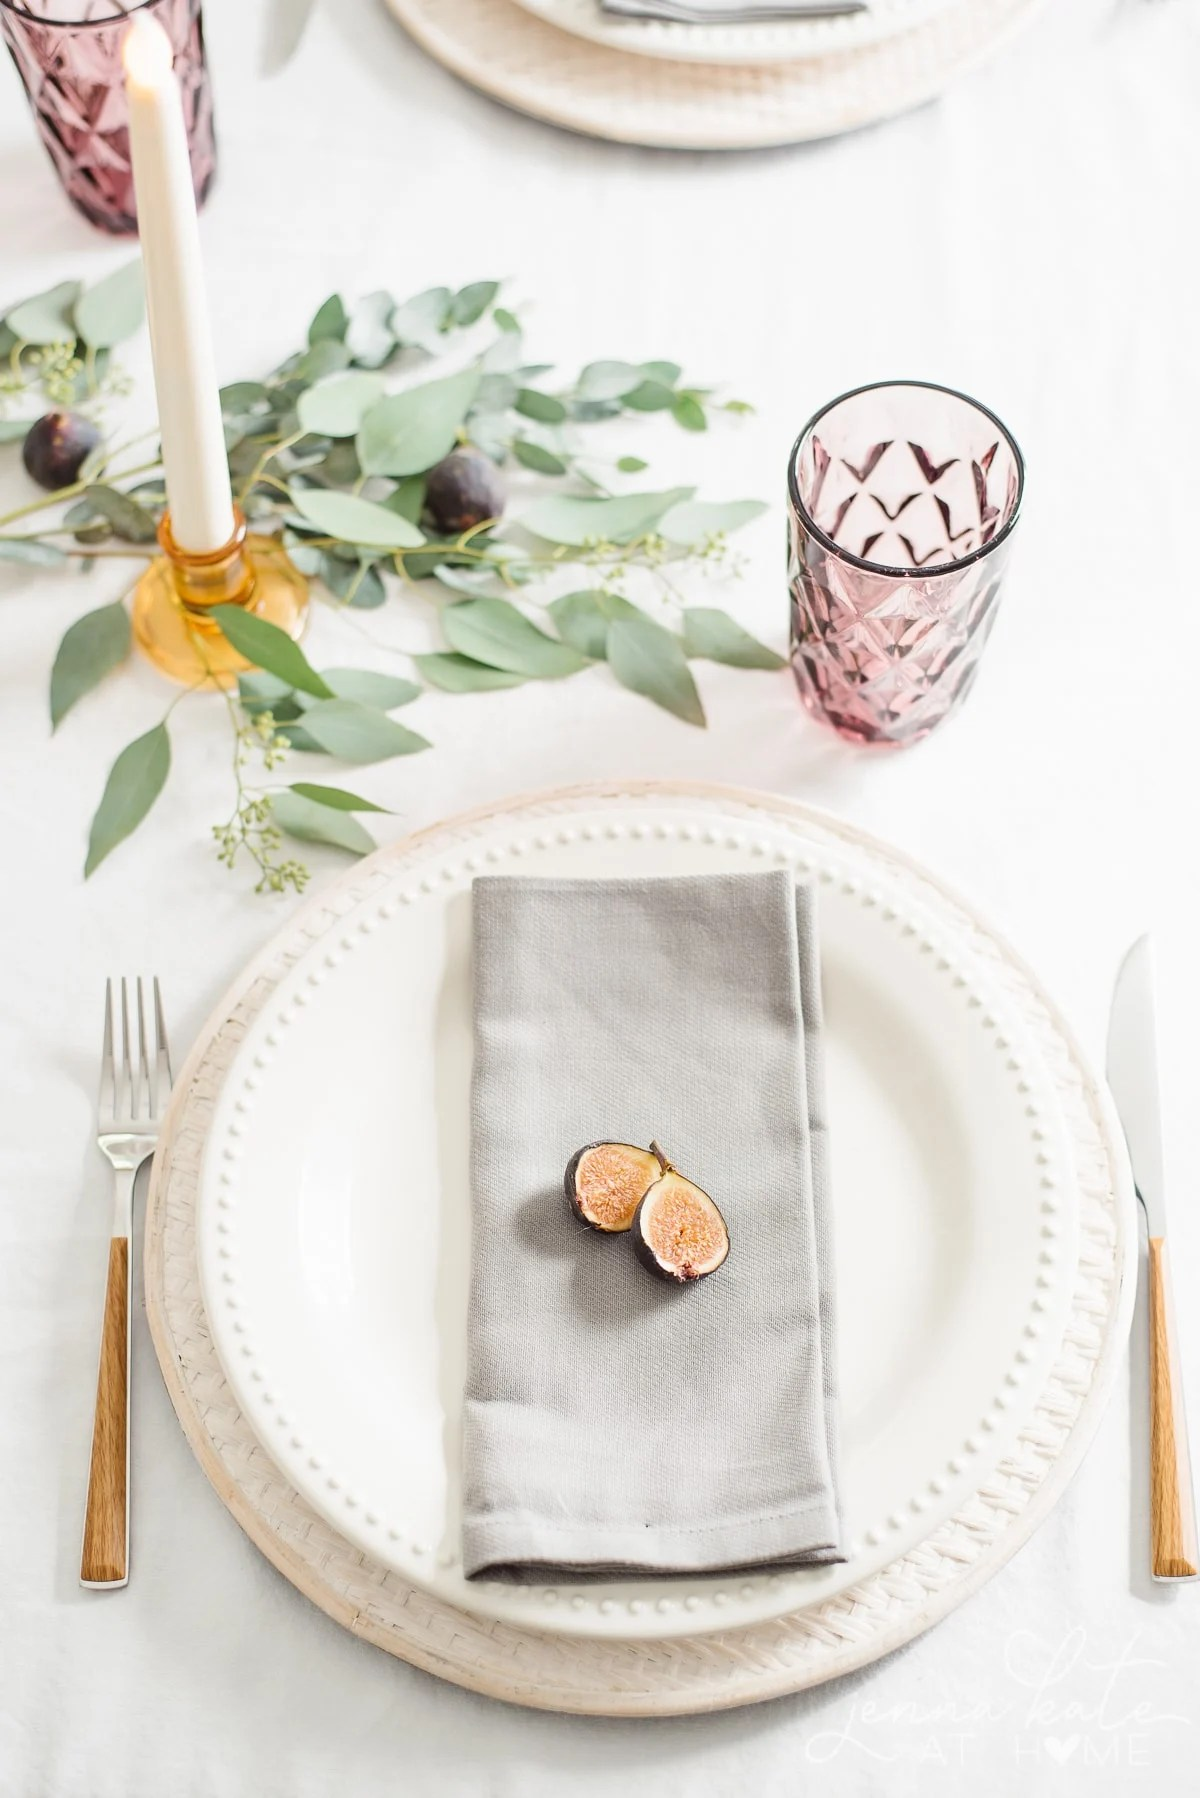 Simple fig place setting